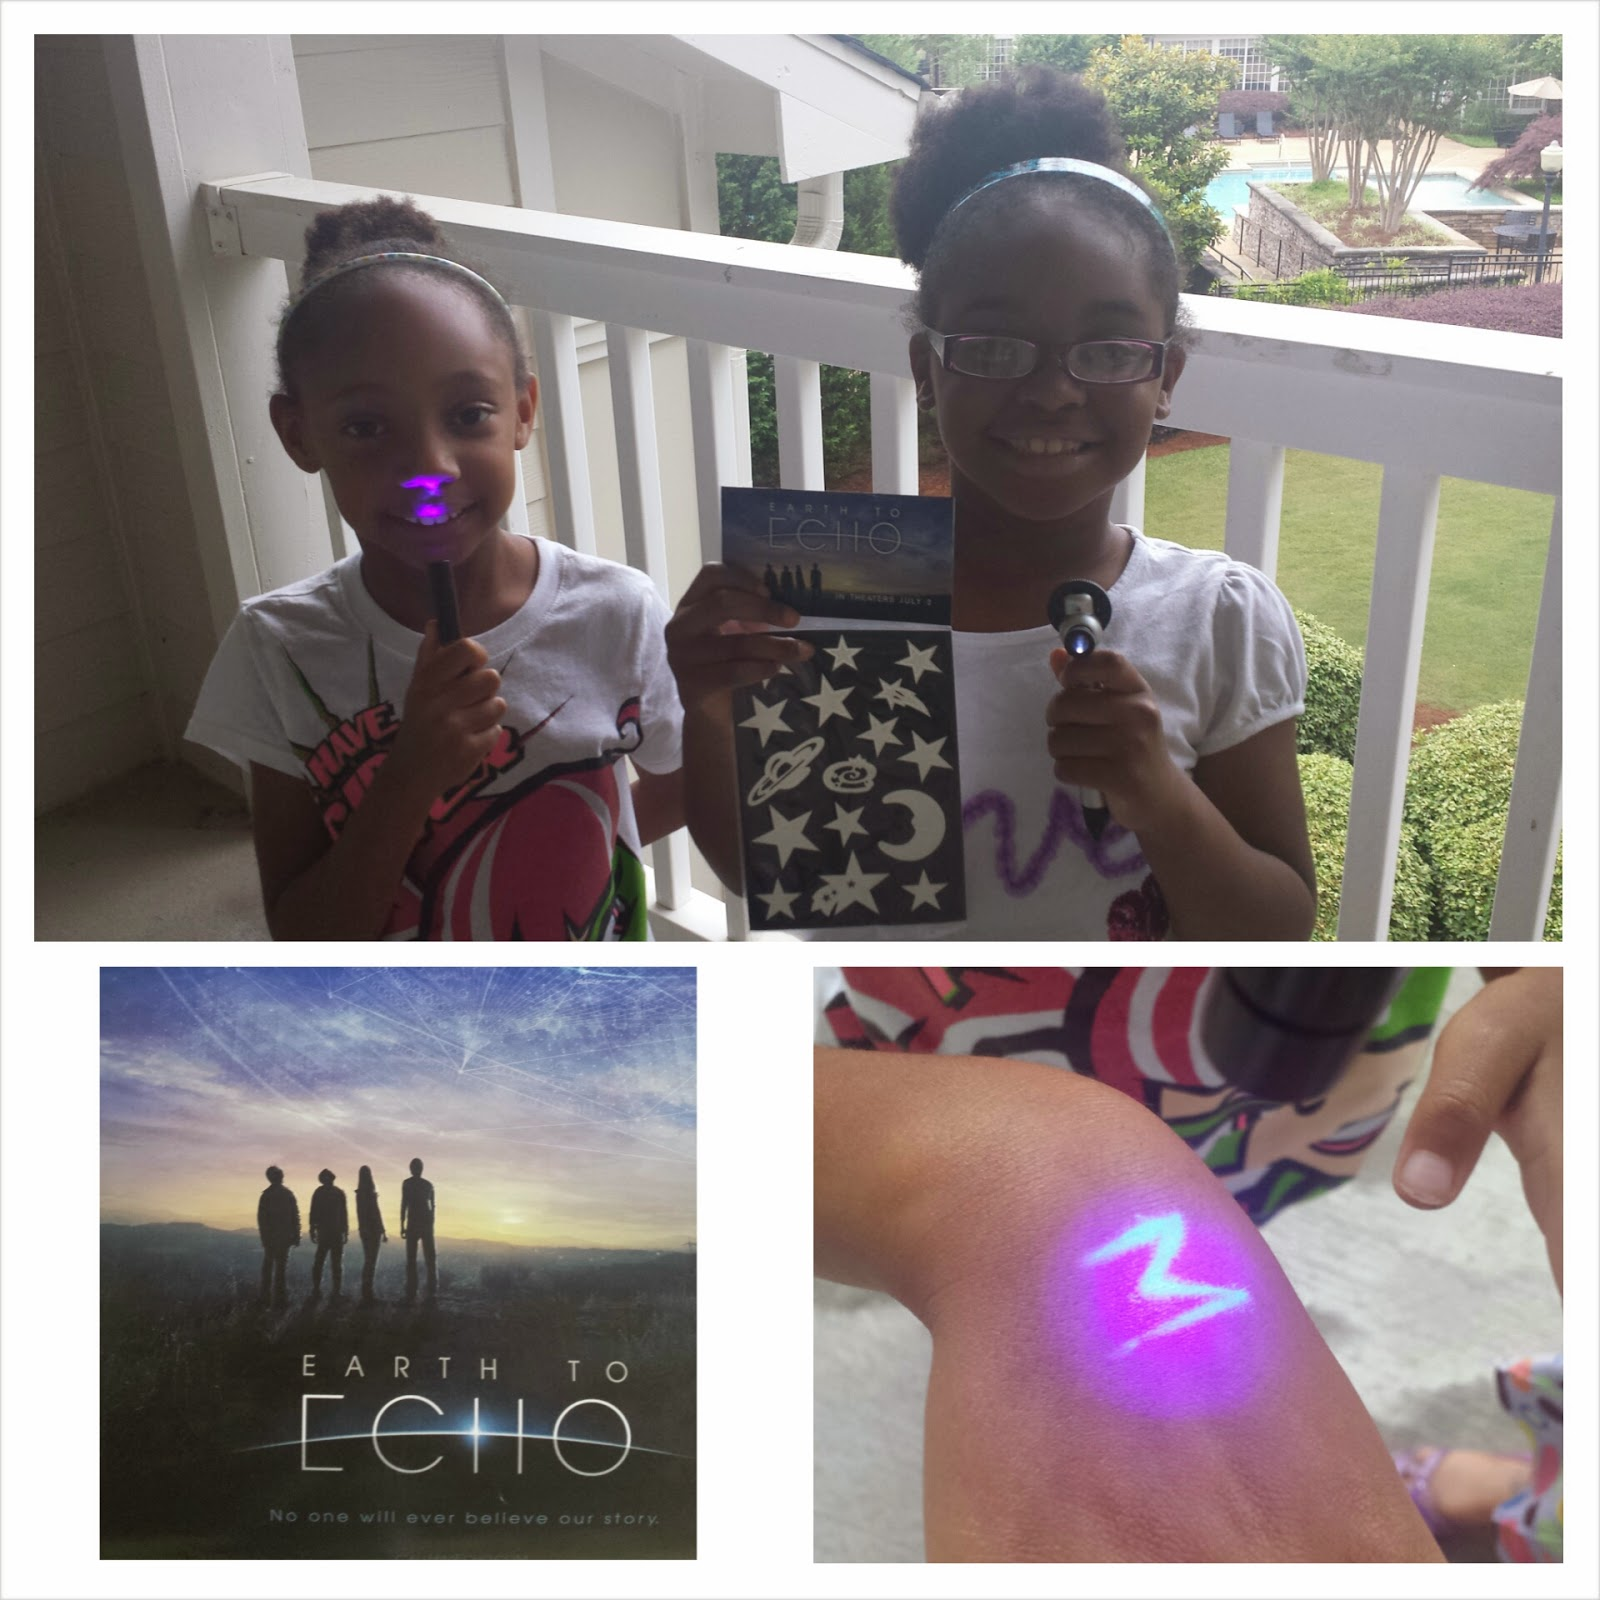 Relativity's Earth to Echo in Theaters July 2 via ProductReviewMom.com